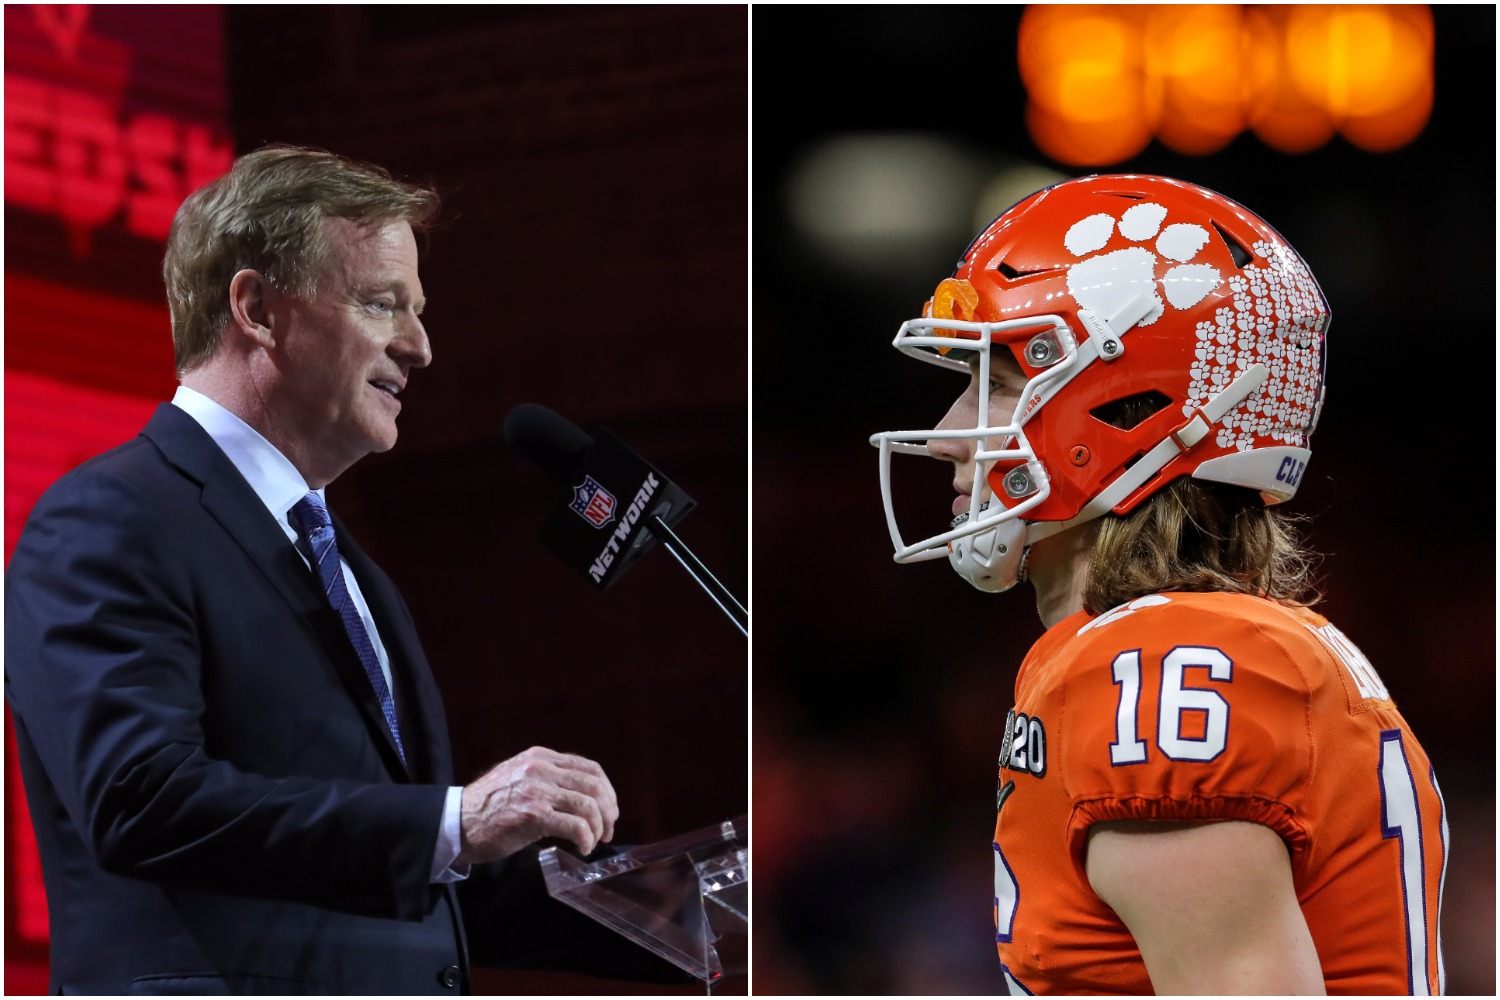 NFL commissioner Roger Goodell stands at the podium during the NFL draft as Clemson quarterback Trevor Lawrence focuses ahead.